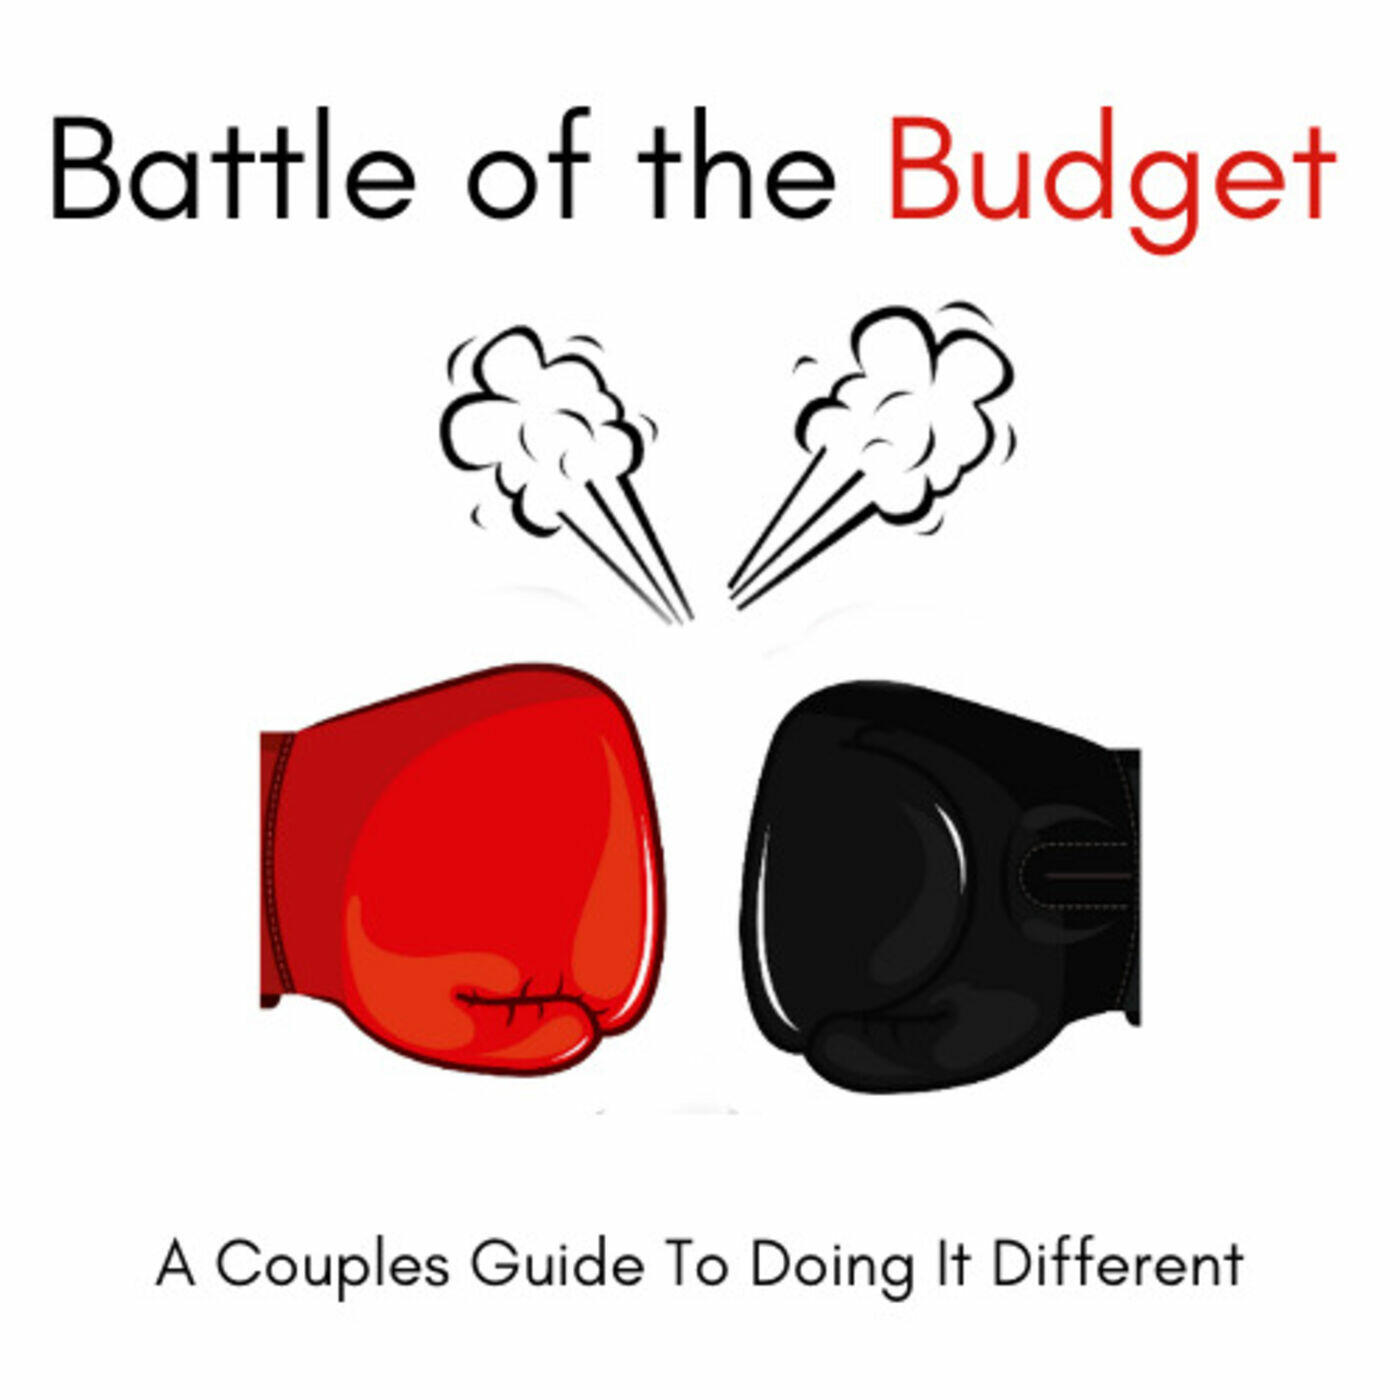 Battle of the Budget